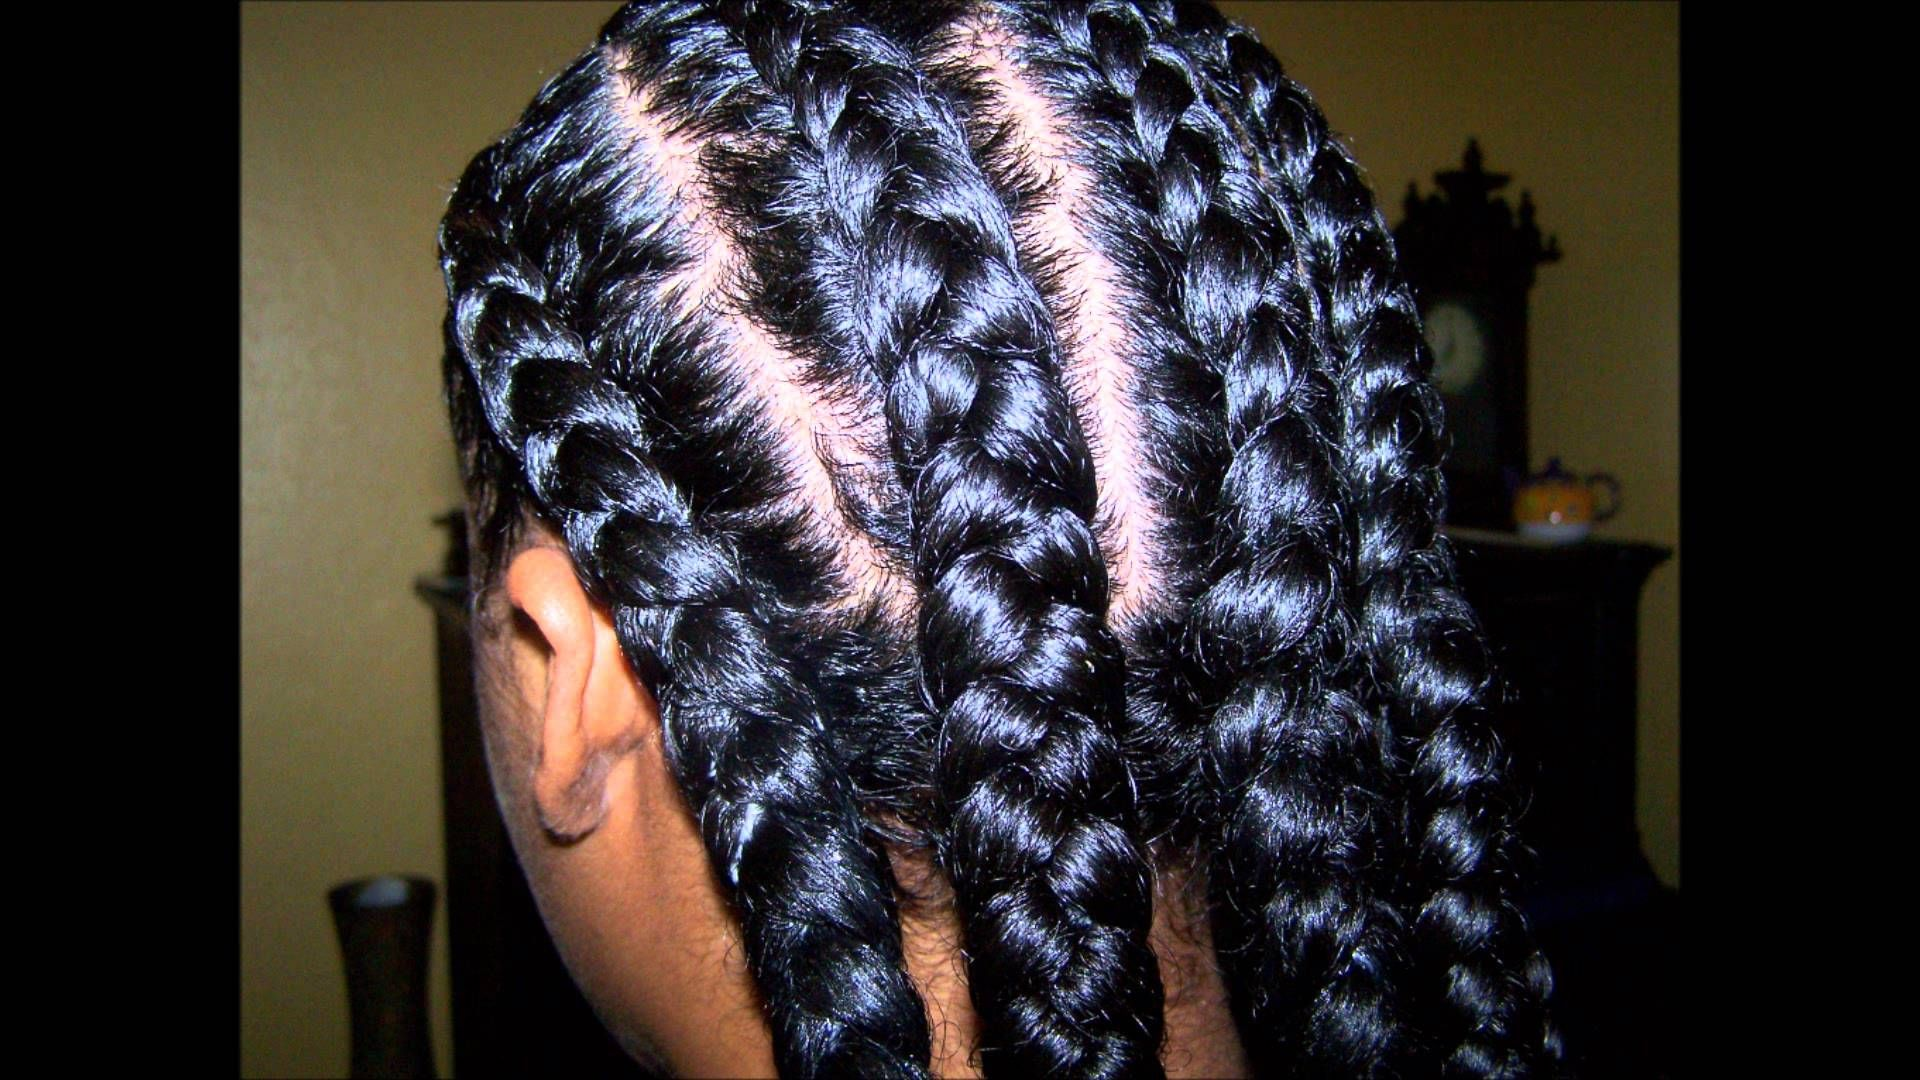 Braidout On Dry Hair Using Eco Styler Gel I Think The Key Is To Only Do 5 To 6 Big Braids Tran Natural Curls Hairstyles Dry Natural Hair Natural Hair Styles